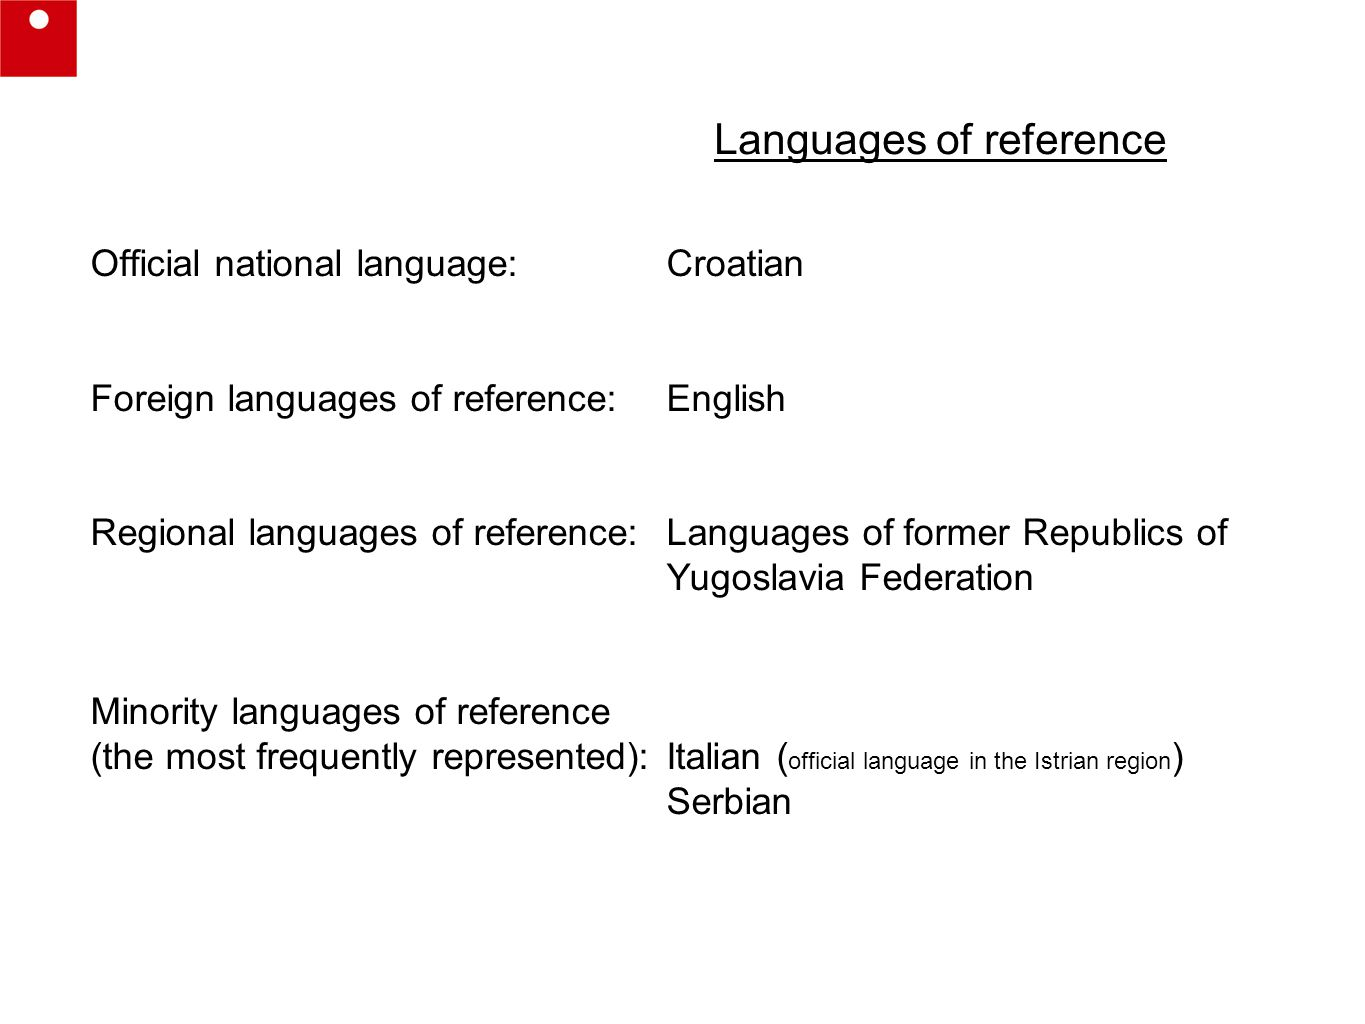 Languages of reference Official national language: Croatian Foreign languages of reference: English Regional languages of reference:Languages of former Republics of Yugoslavia Federation Minority languages of reference (the most frequently represented):Italian ( official language in the Istrian region ) Serbian